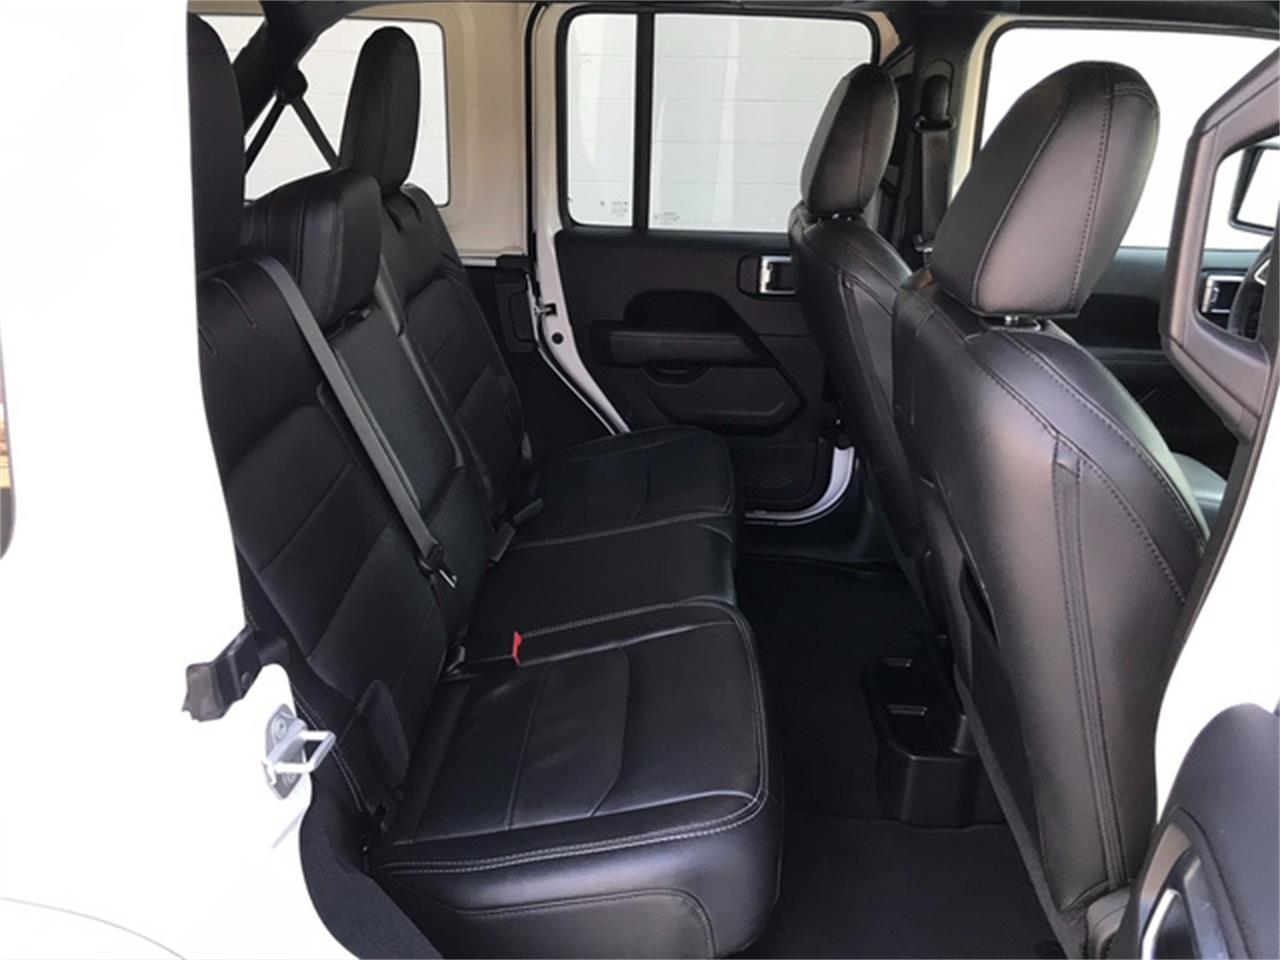 2019 Jeep Wrangler (CC-1321088) for sale in Shelby Township, Michigan